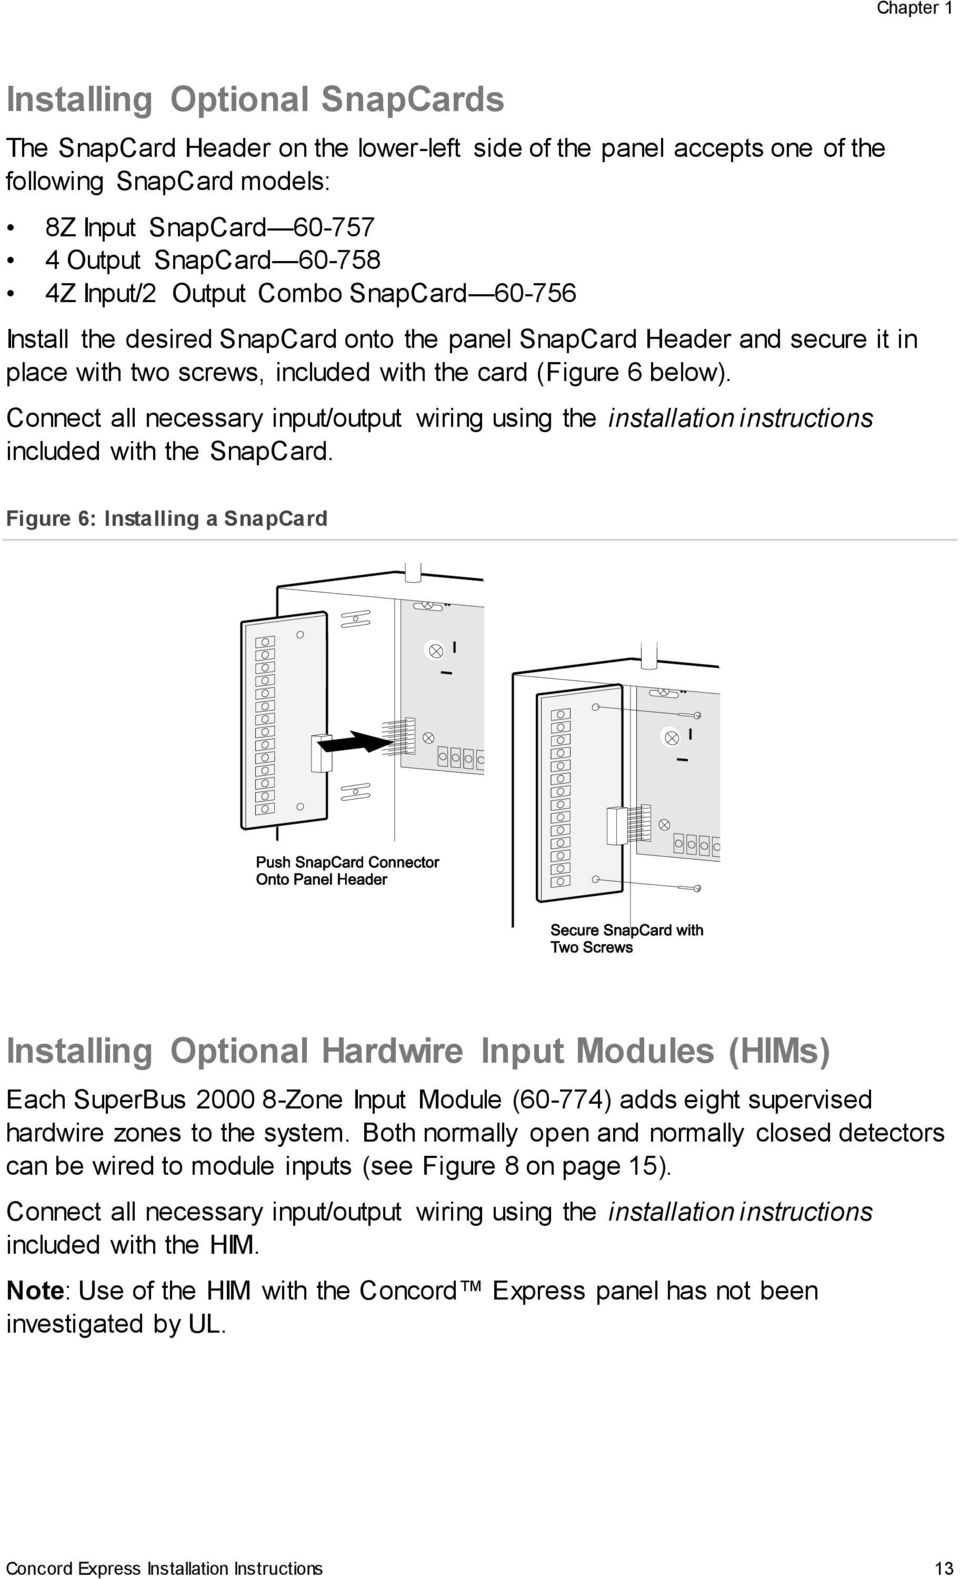 medium resolution of connect all necessary input output wiring using the installation instructions included with the snapcard